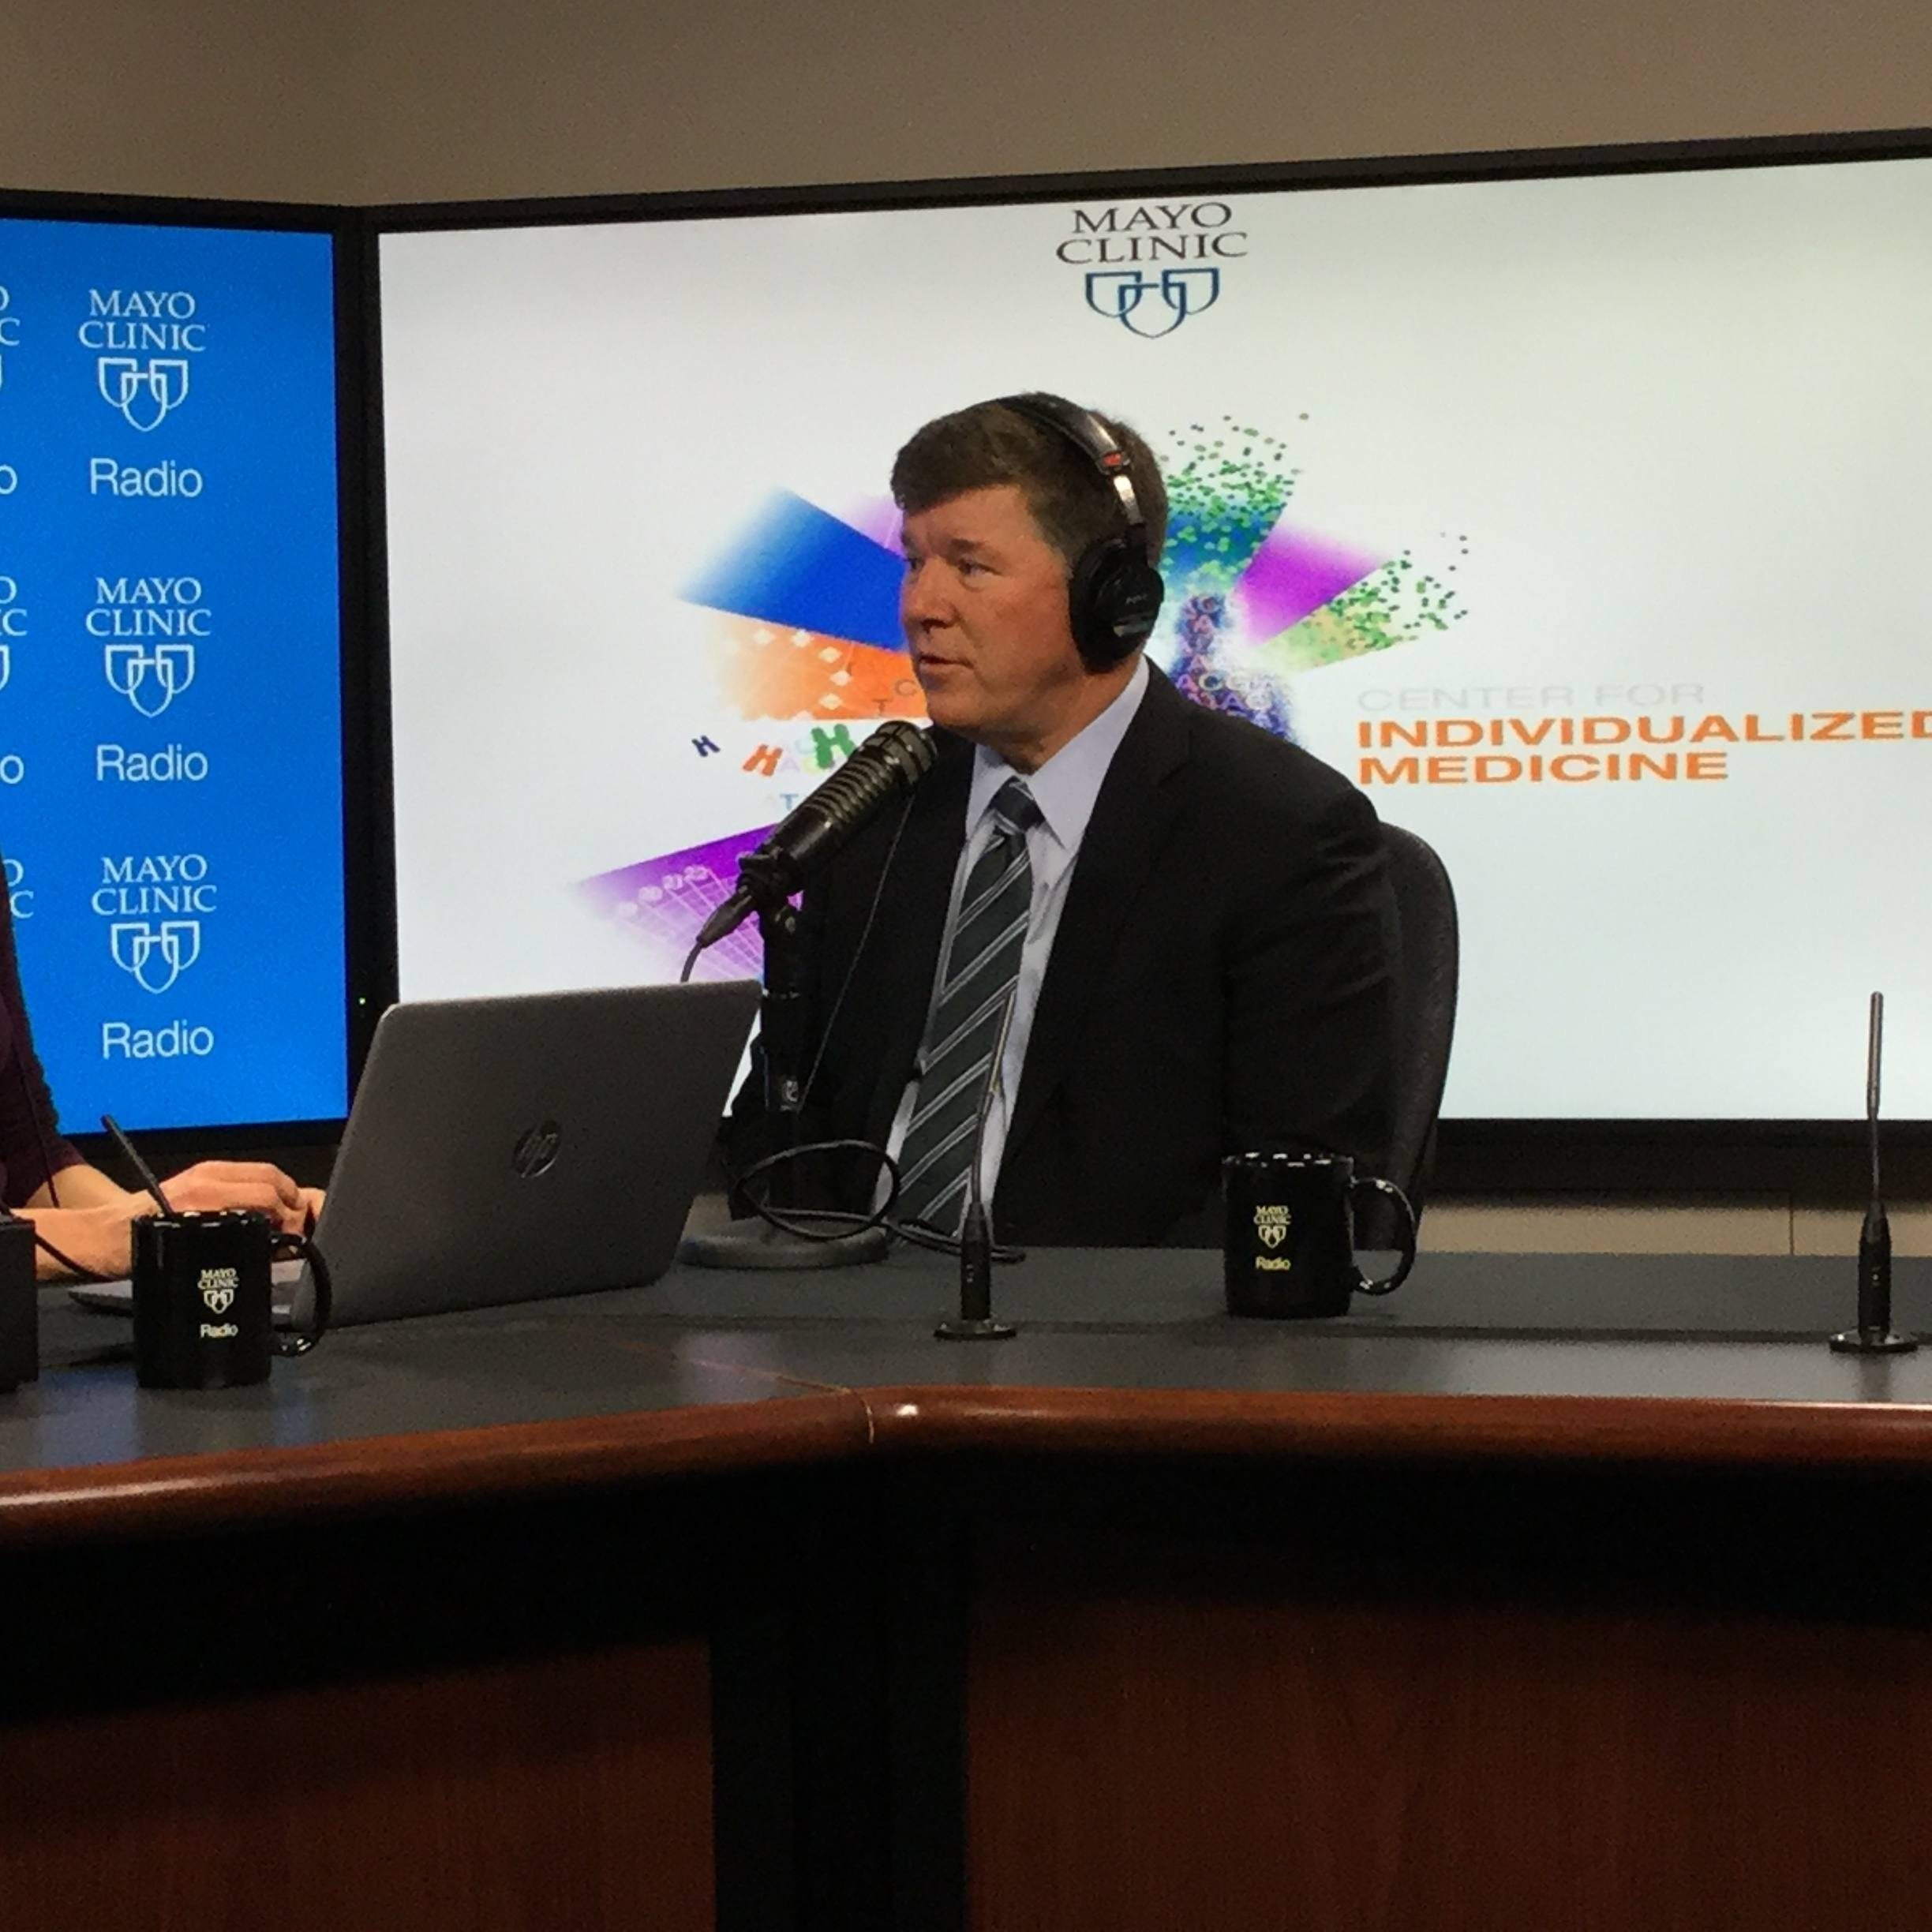 Dr. Keith Stewart being interviewed on Mayo Clinic Radio